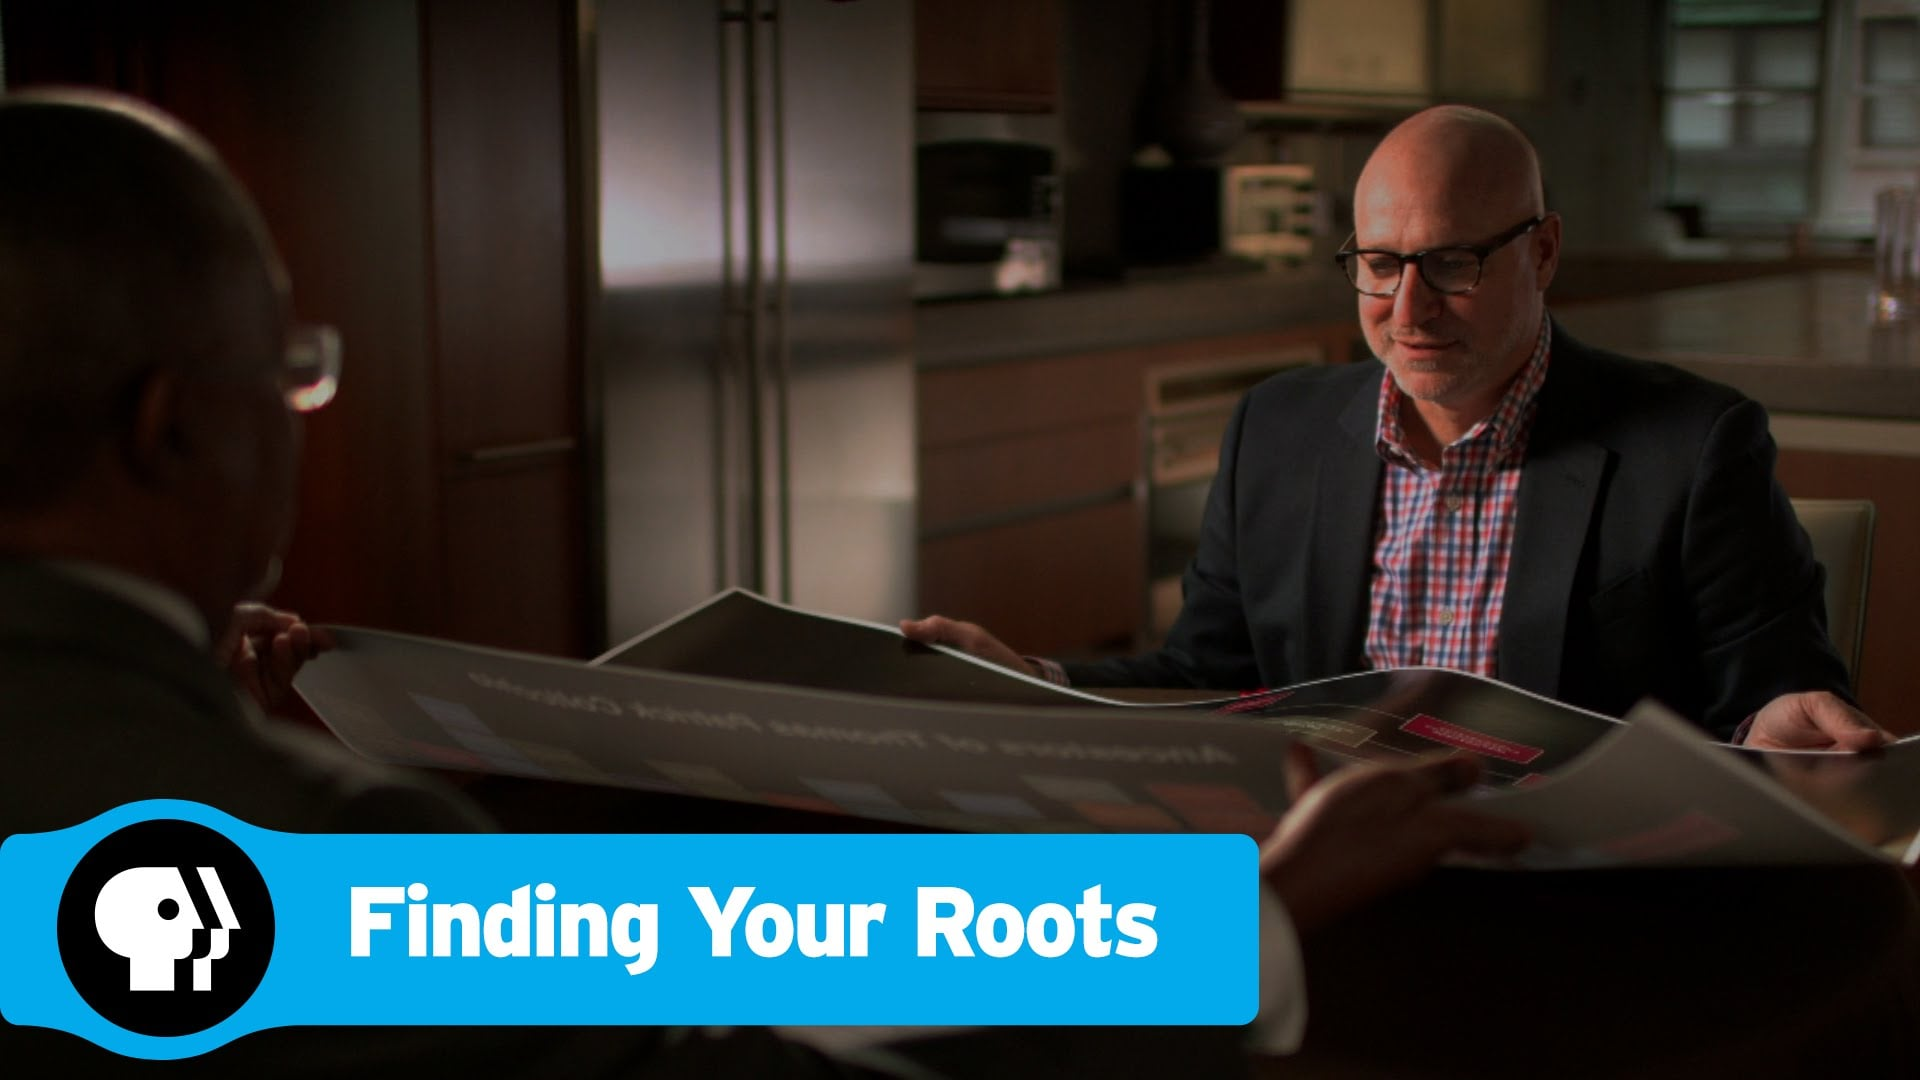 FINDING YOUR ROOTS | Tom Colicchio's Ideal Family Dinner | PBS